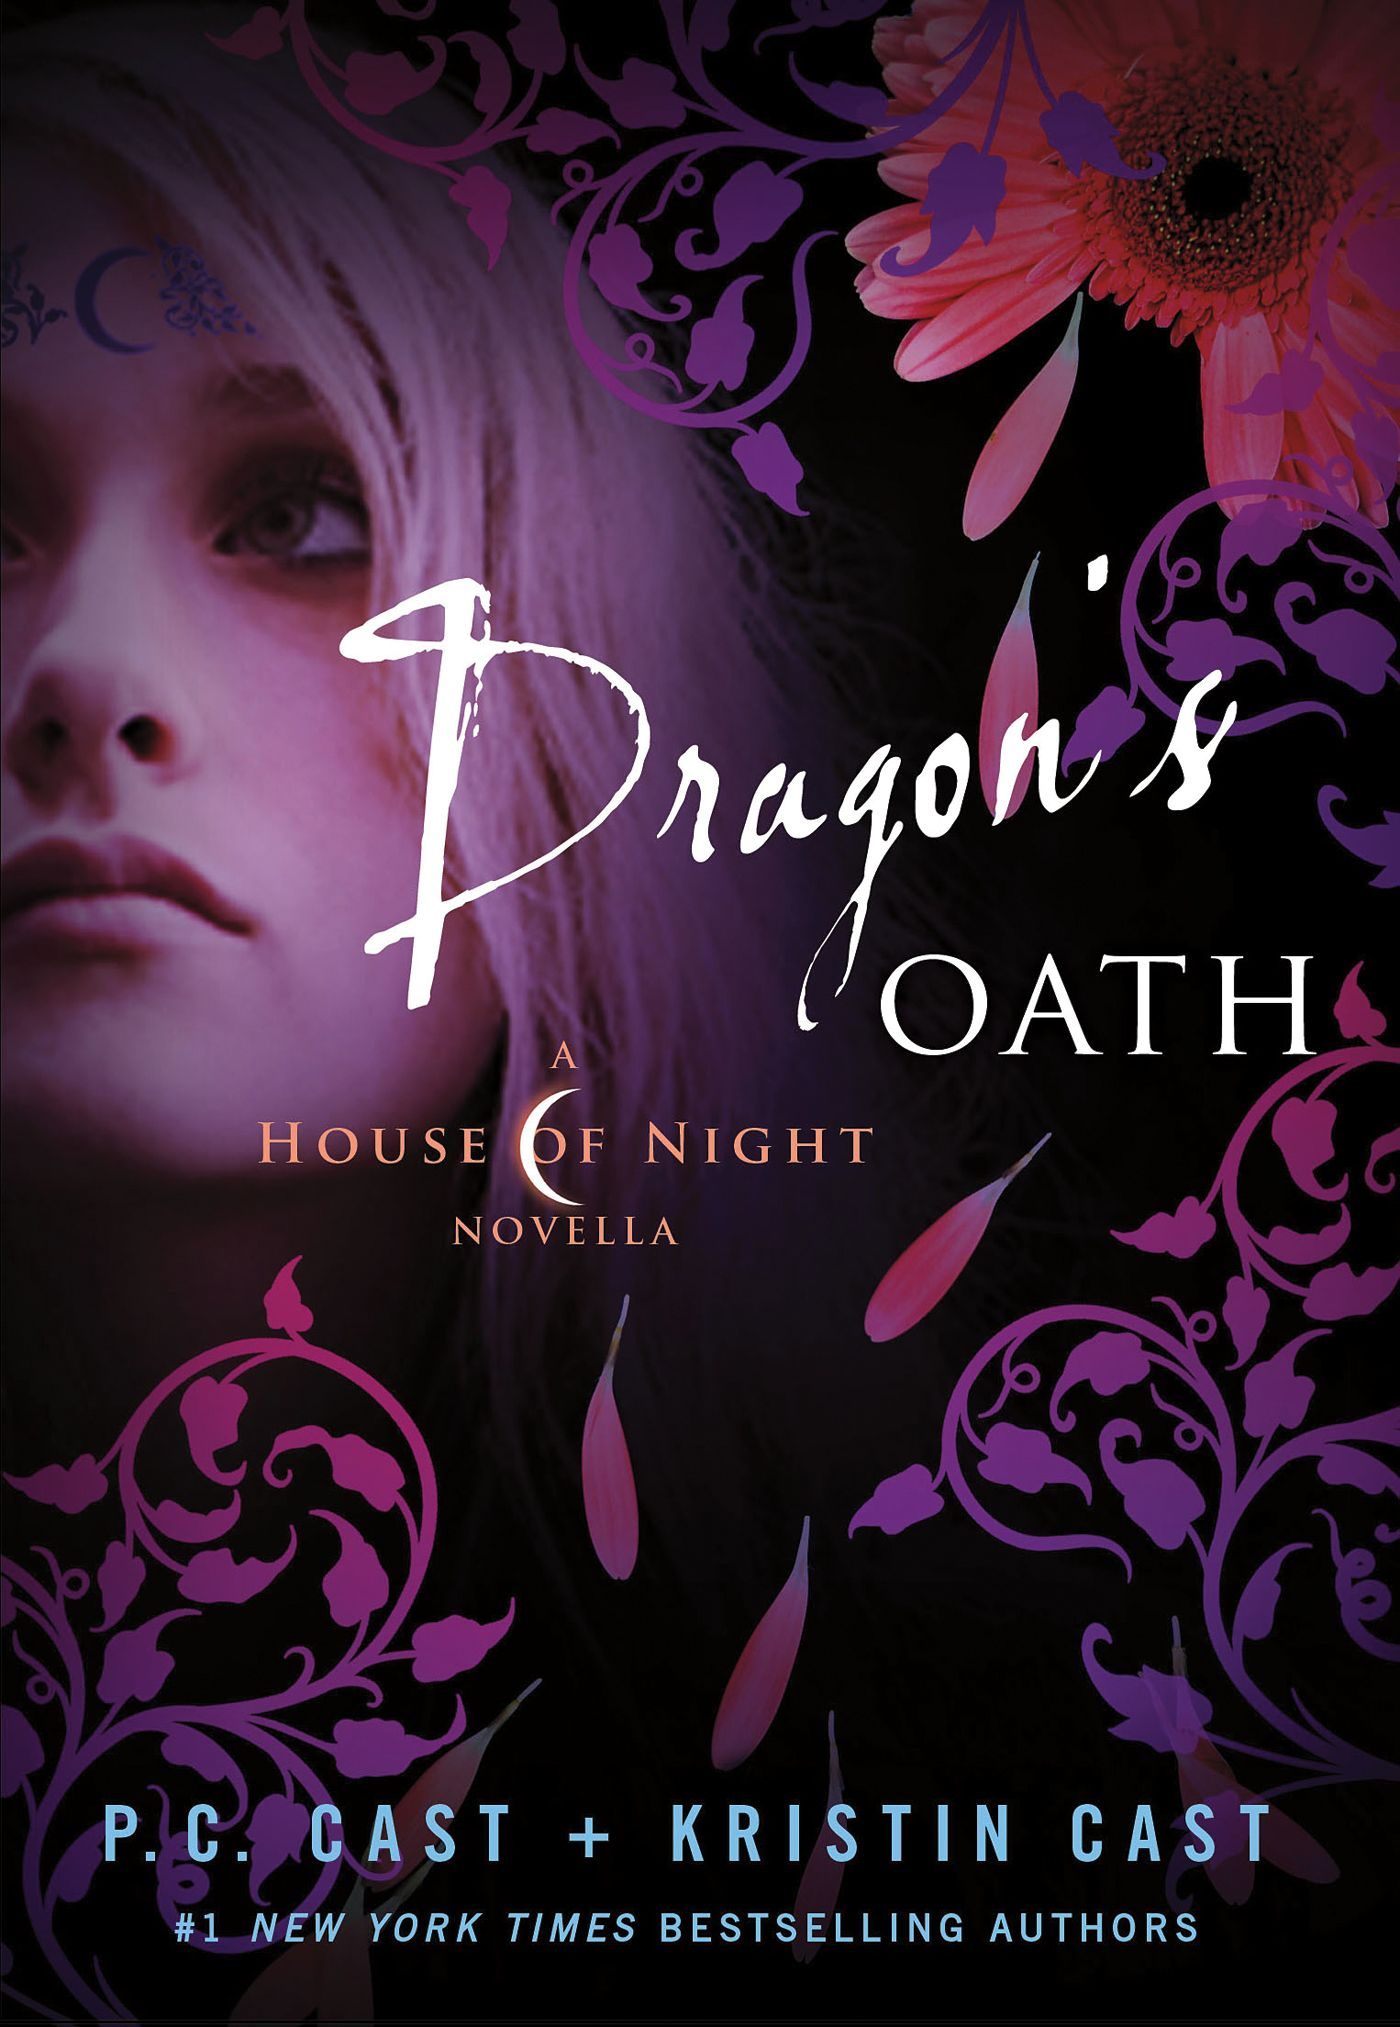 Dragon's Oath By Pc Cast And Kristin Cast A House Of Night Novella